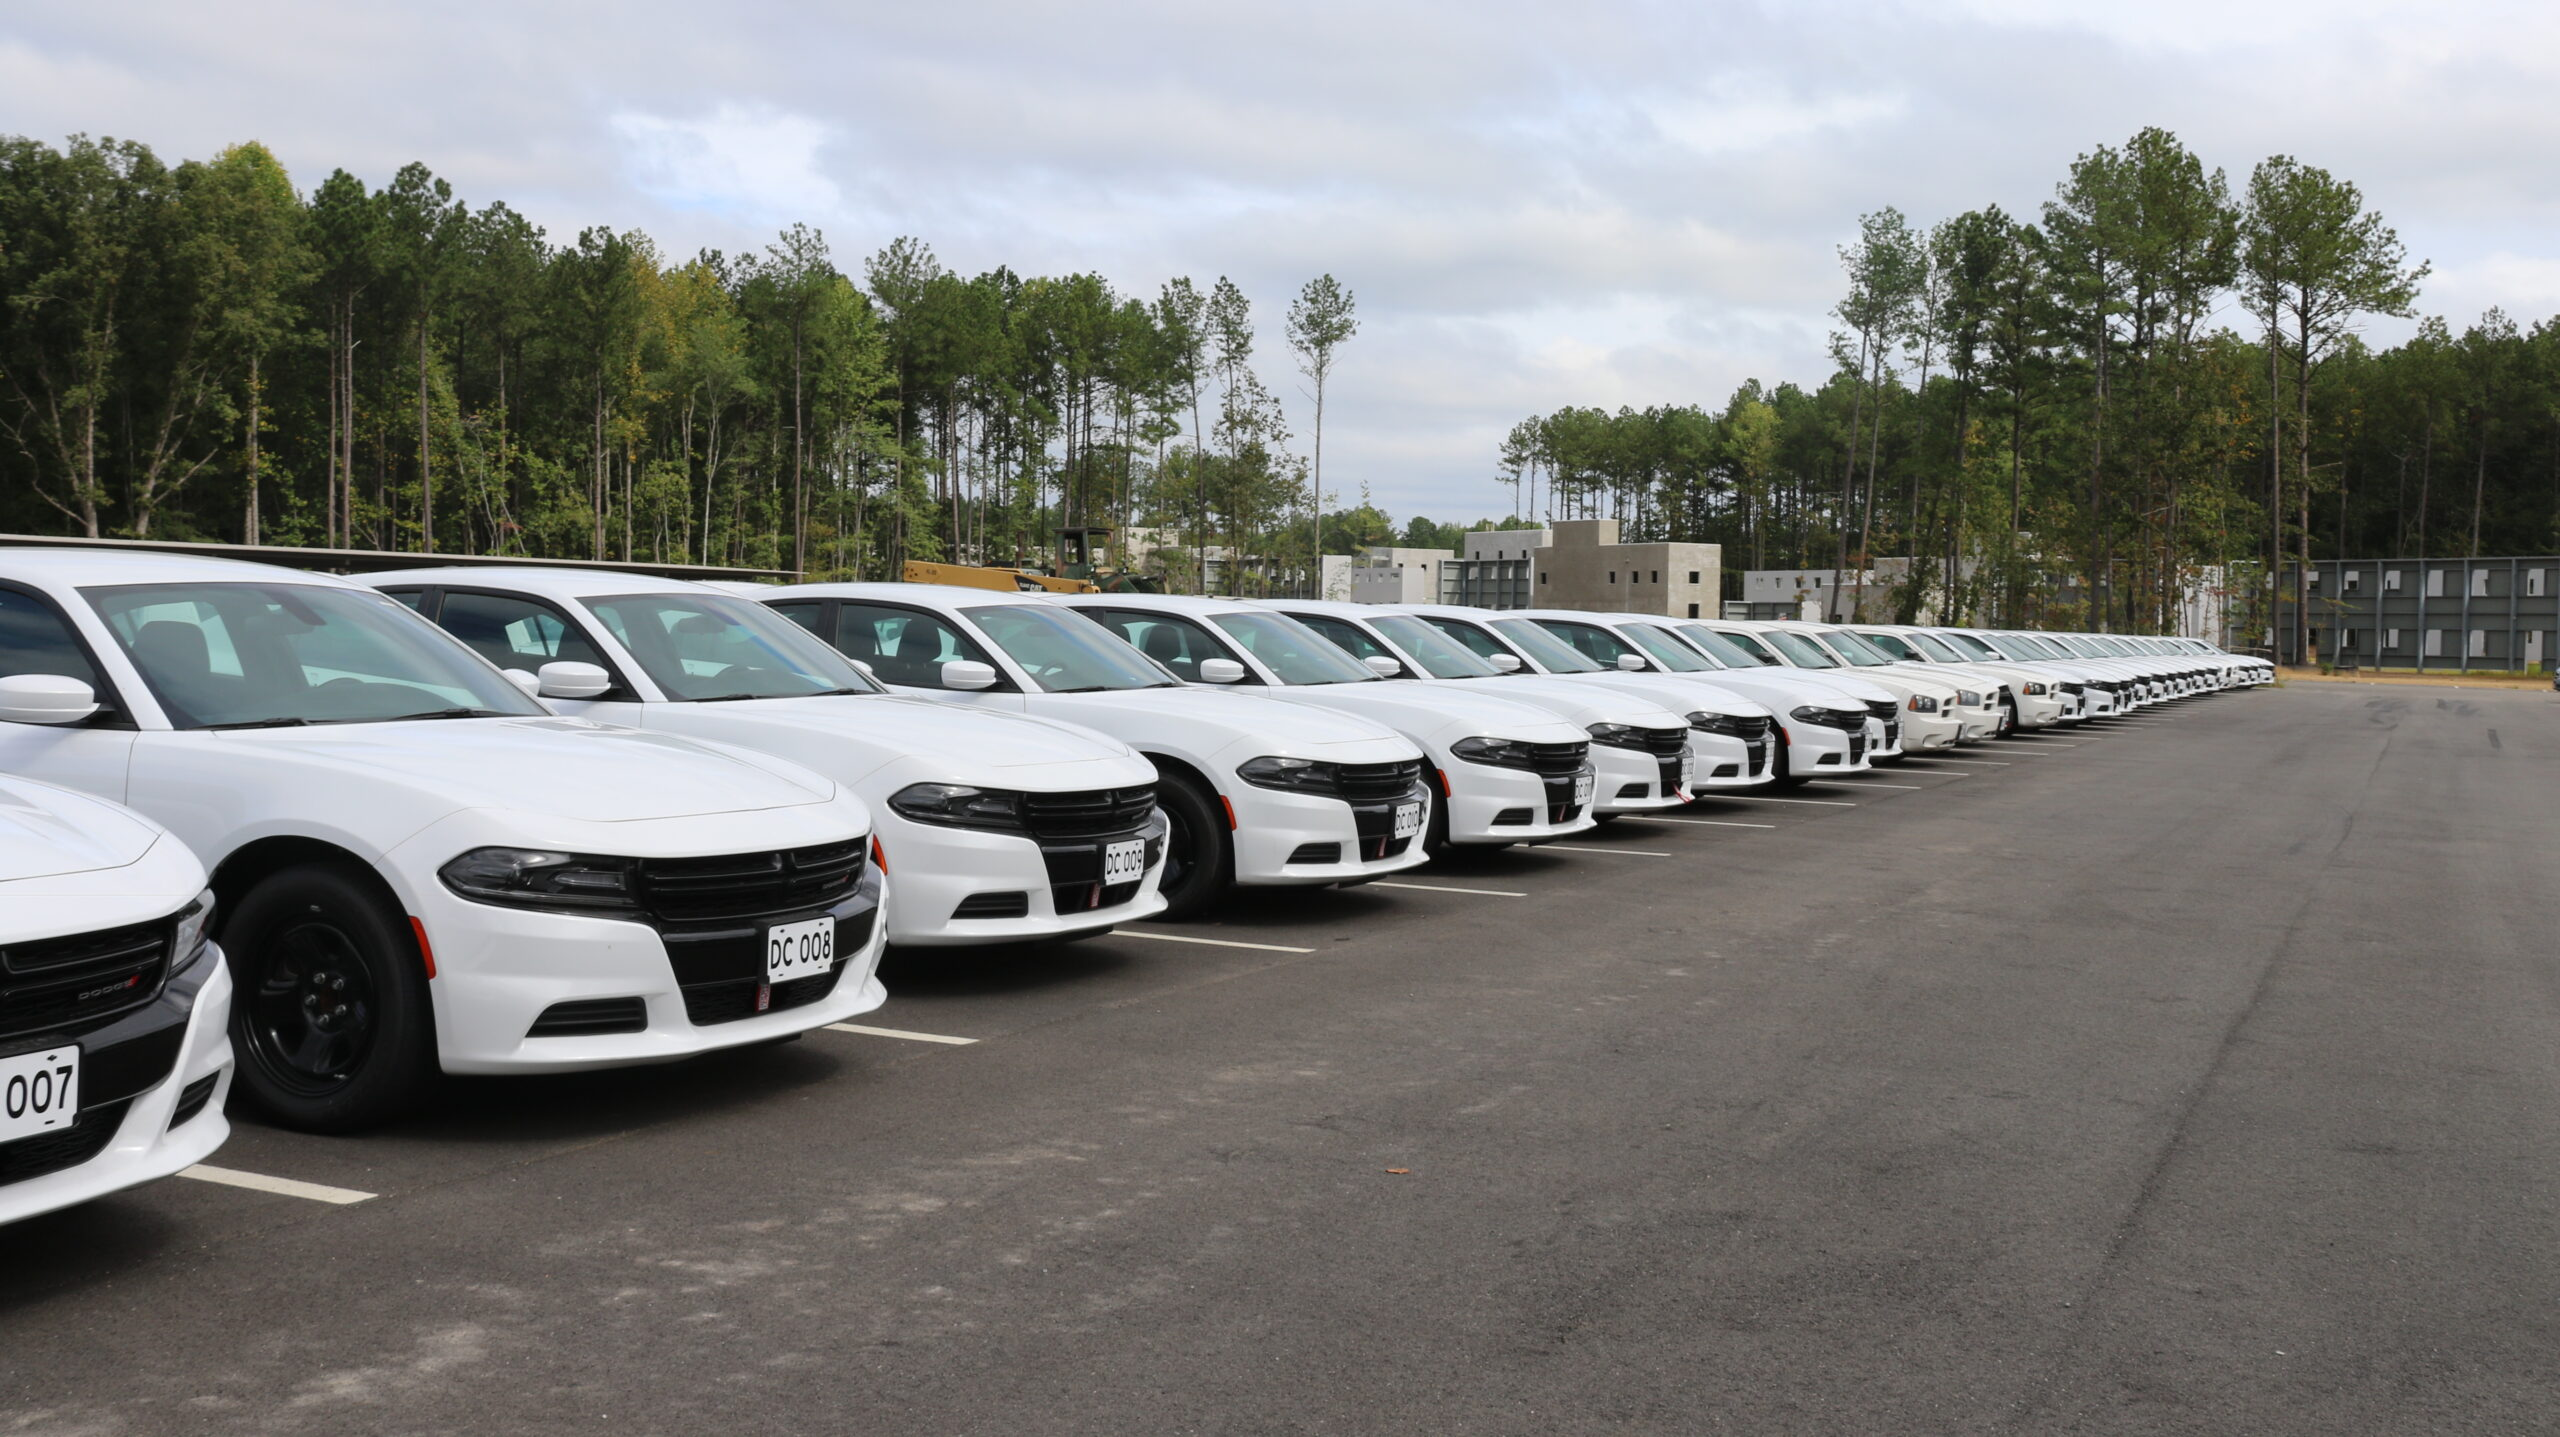 Dodge chargers lined up outside the vehicle maintenance facility at the Foreign Affairs Security Training Center, Sept. 6, 2019. (U.S. Department of State photo)